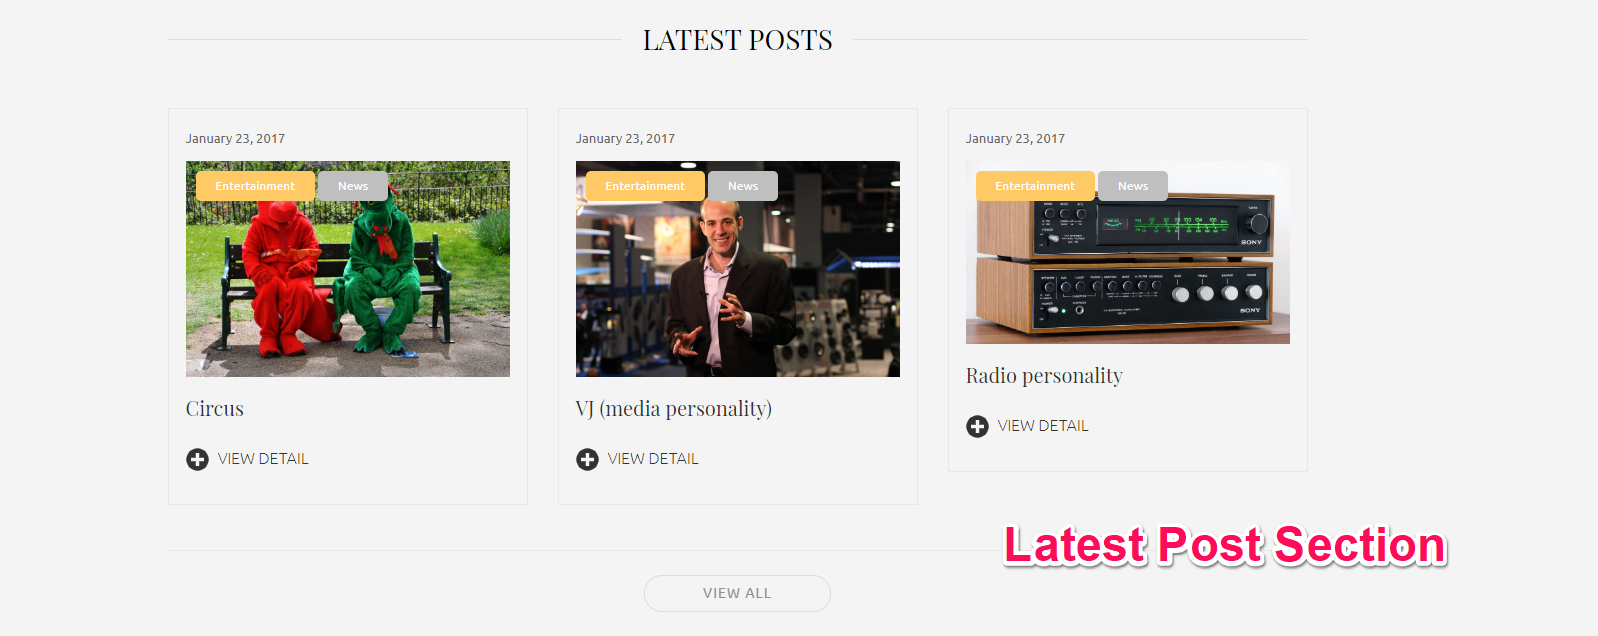 Latest Post Section